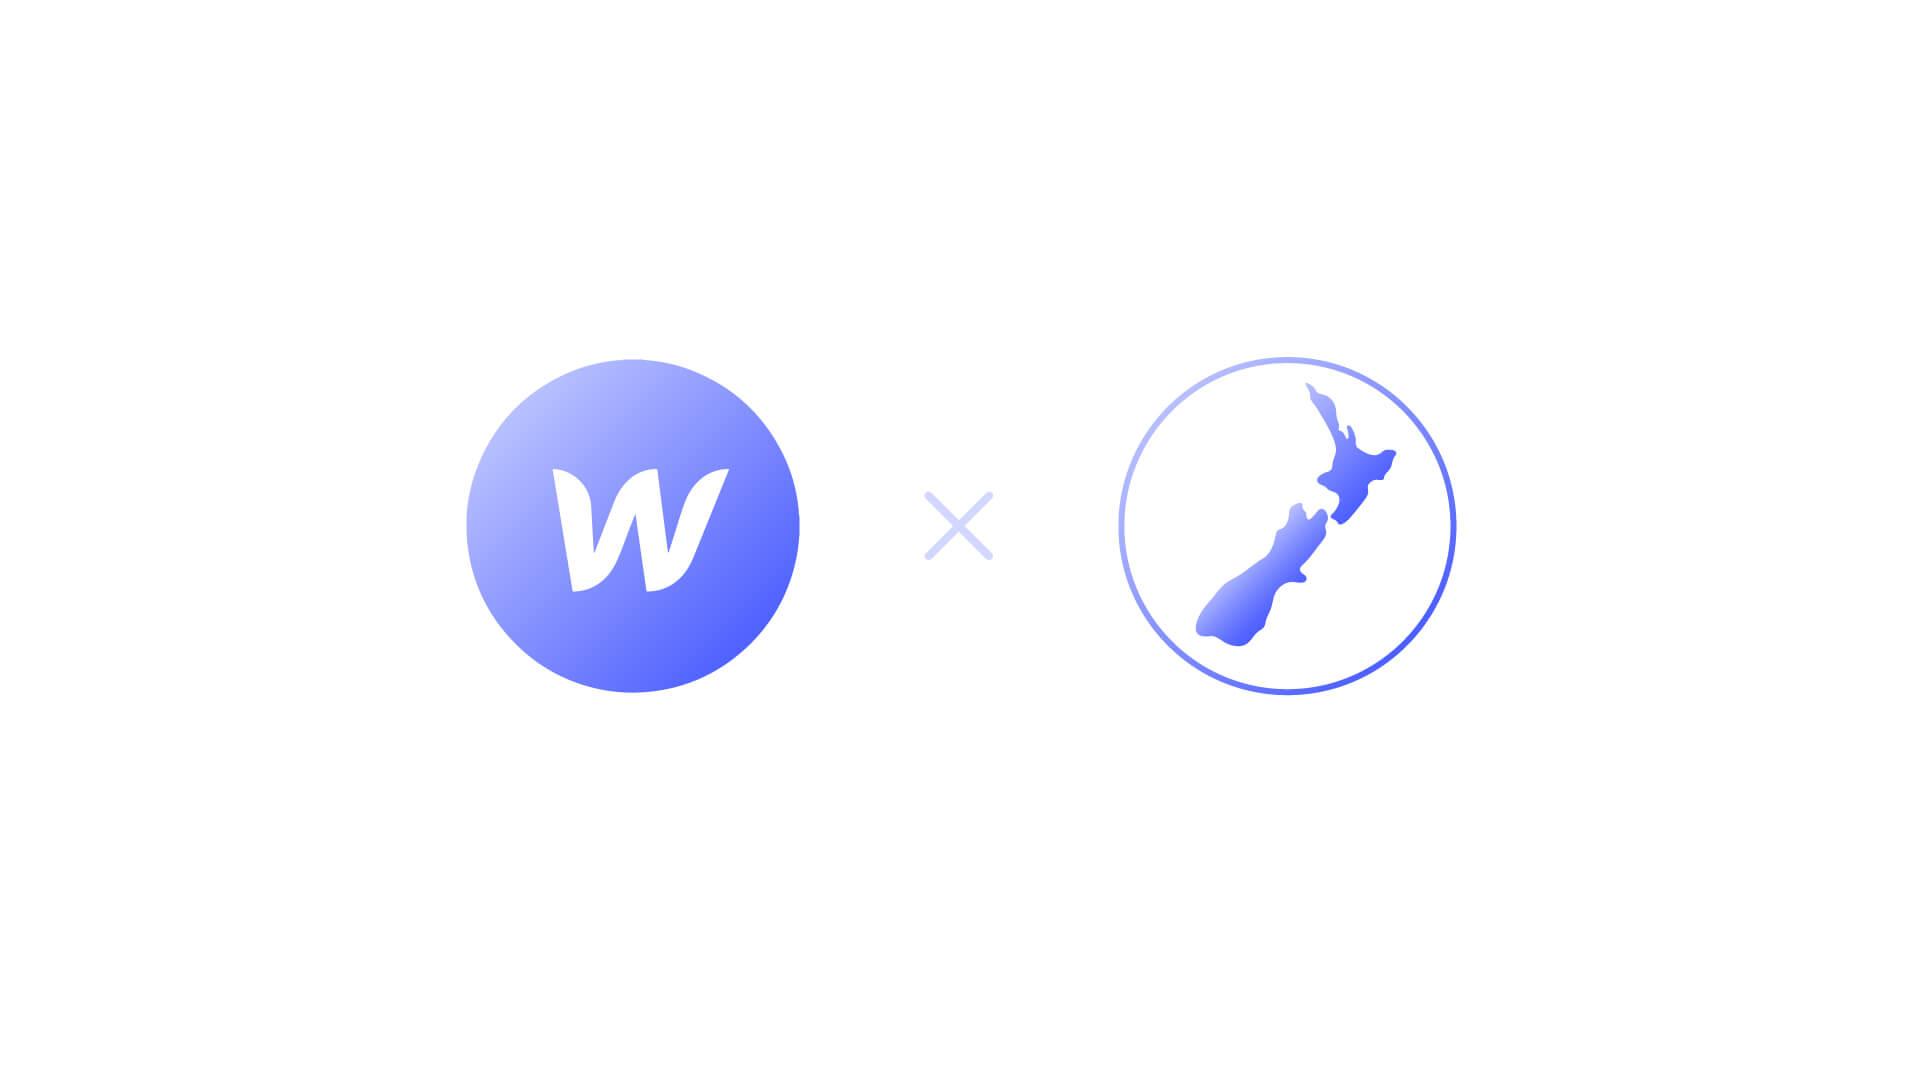 Webflow's logo and New Zealand's icon